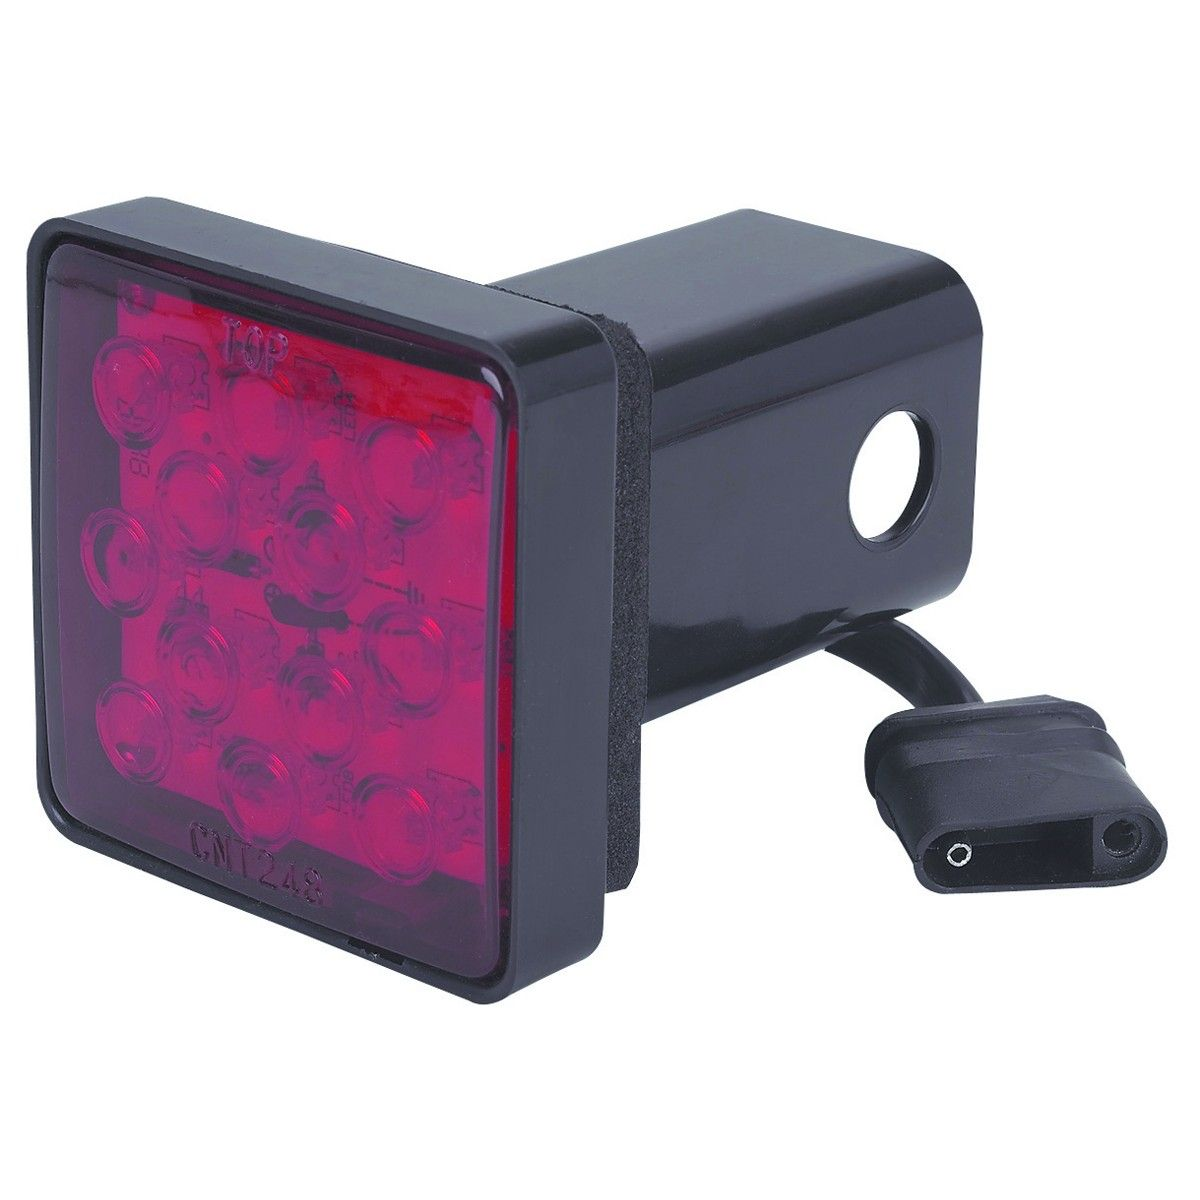 Trailer Hitch Cover With 12 Led Brake Light Trailers